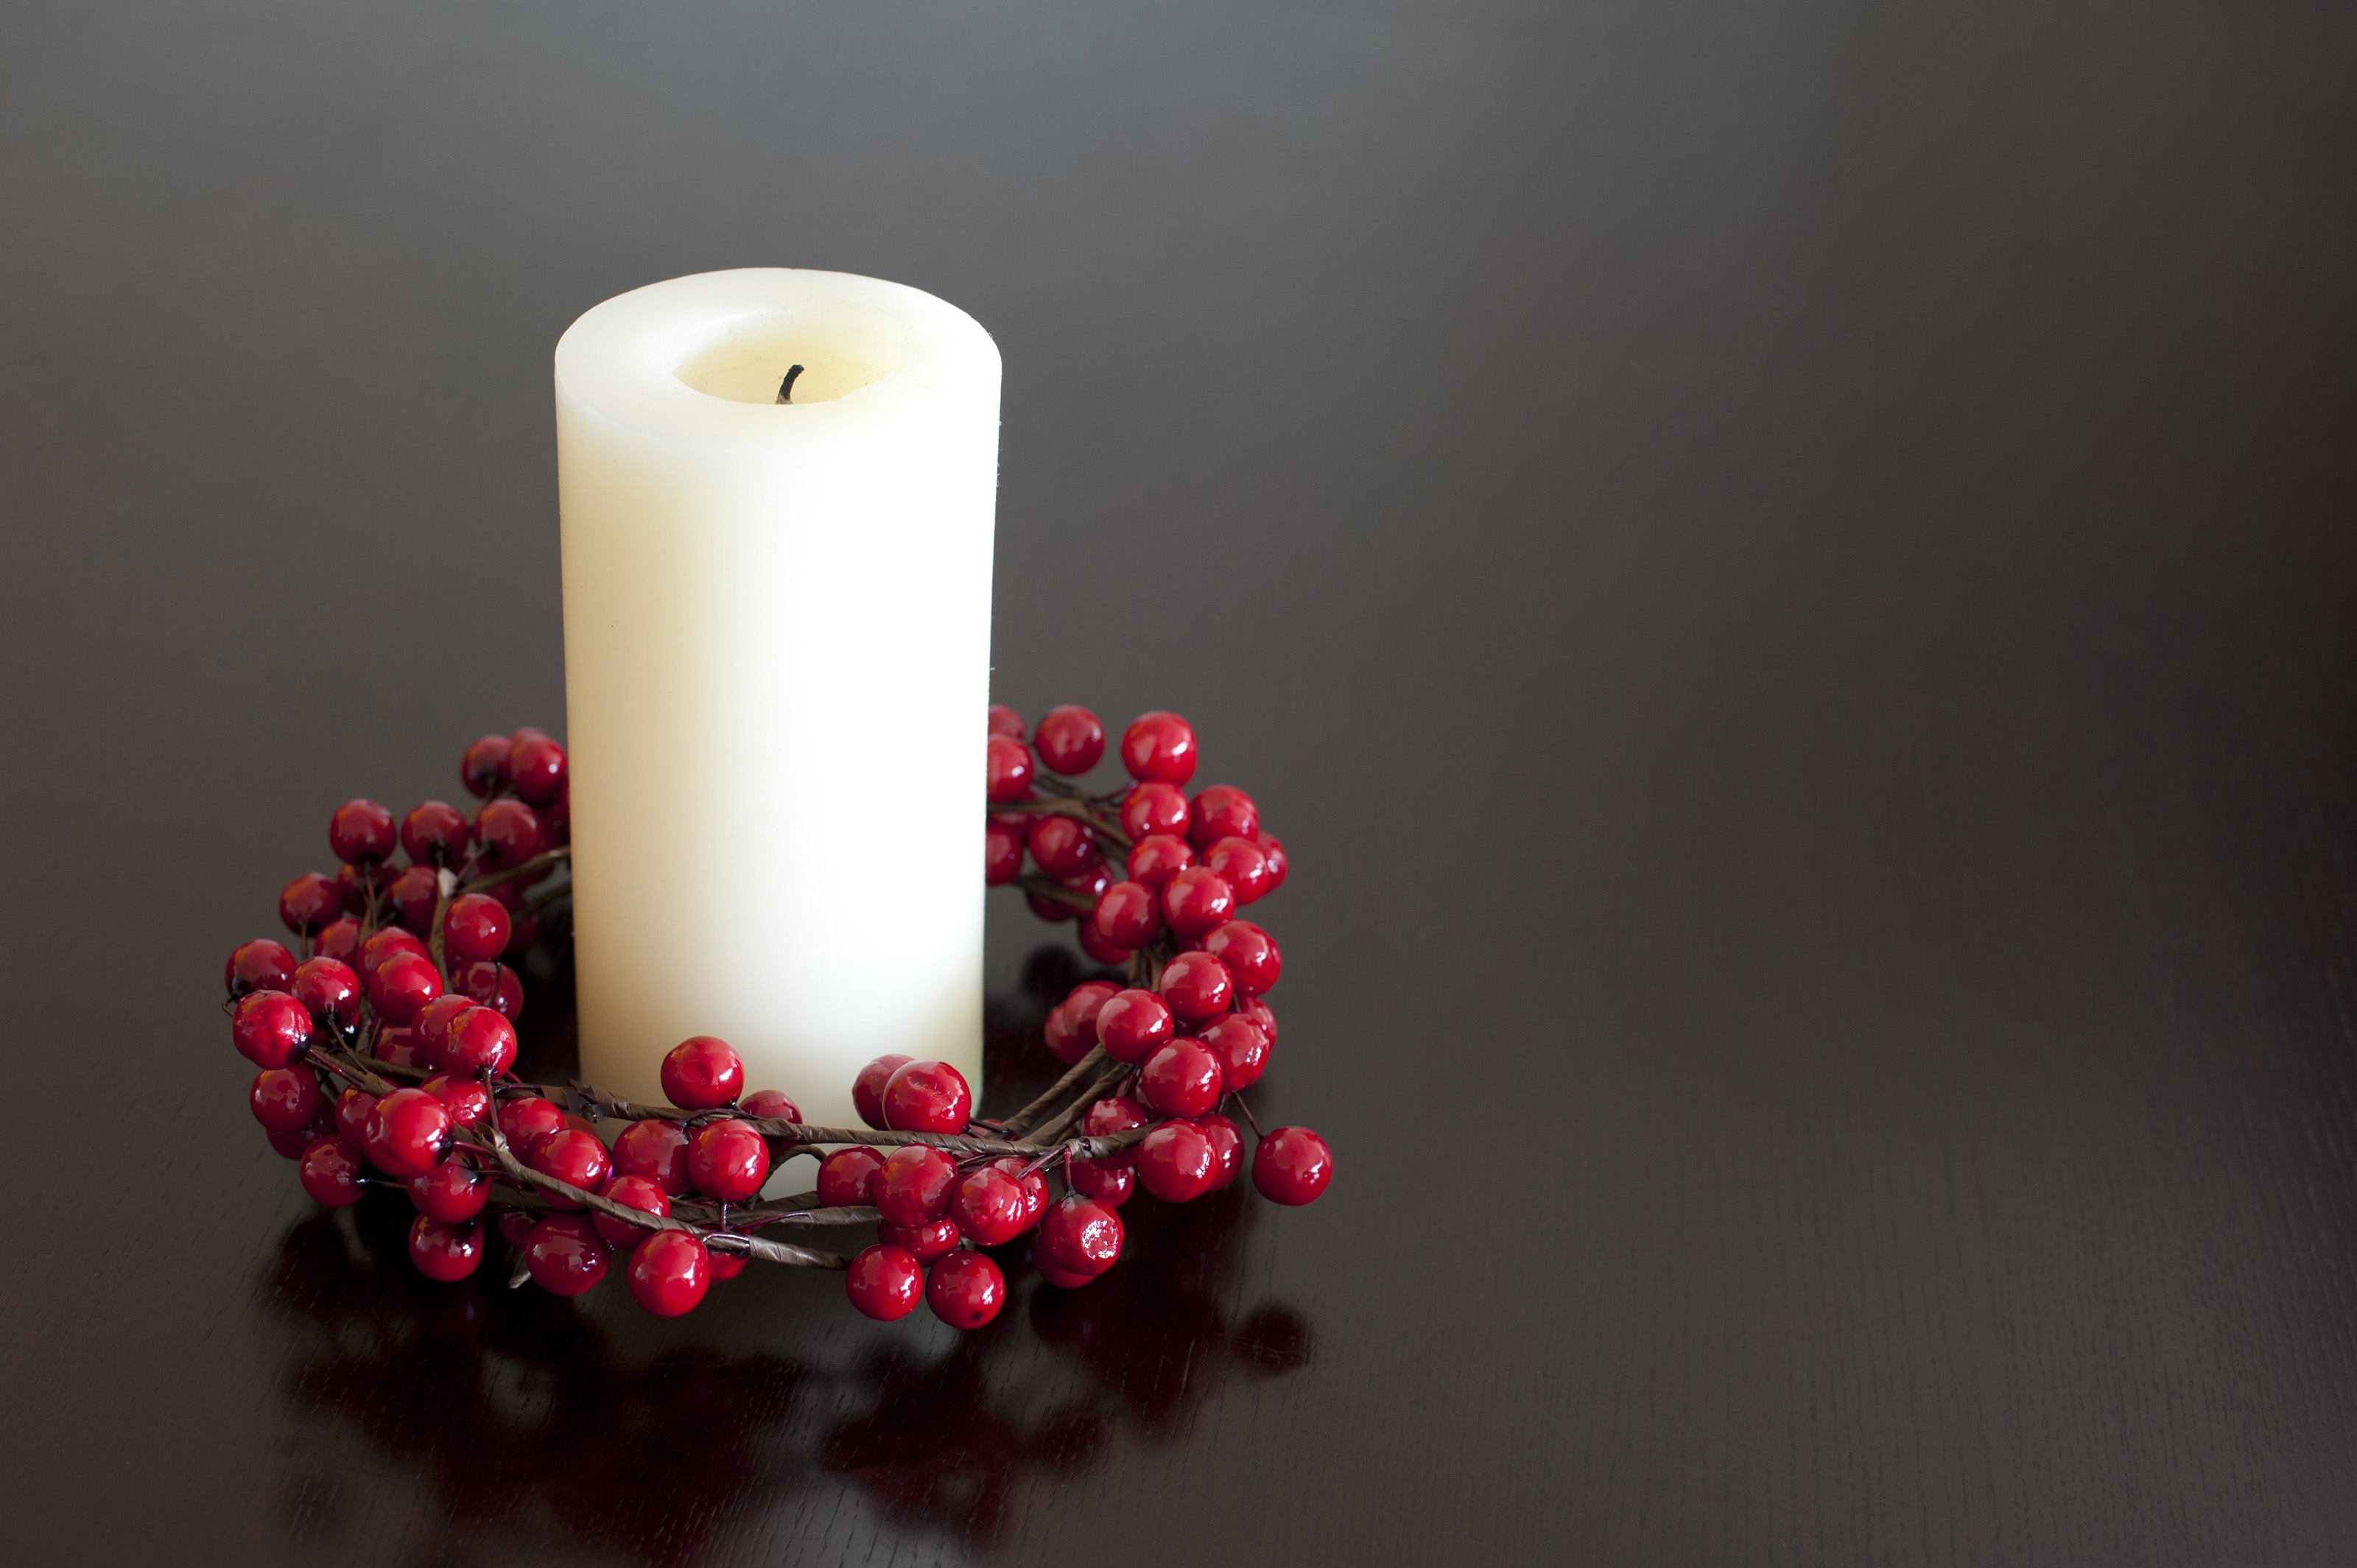 Christmas Candle Black And White Christmas Candle With Red Berries 8215 Stockarch Free